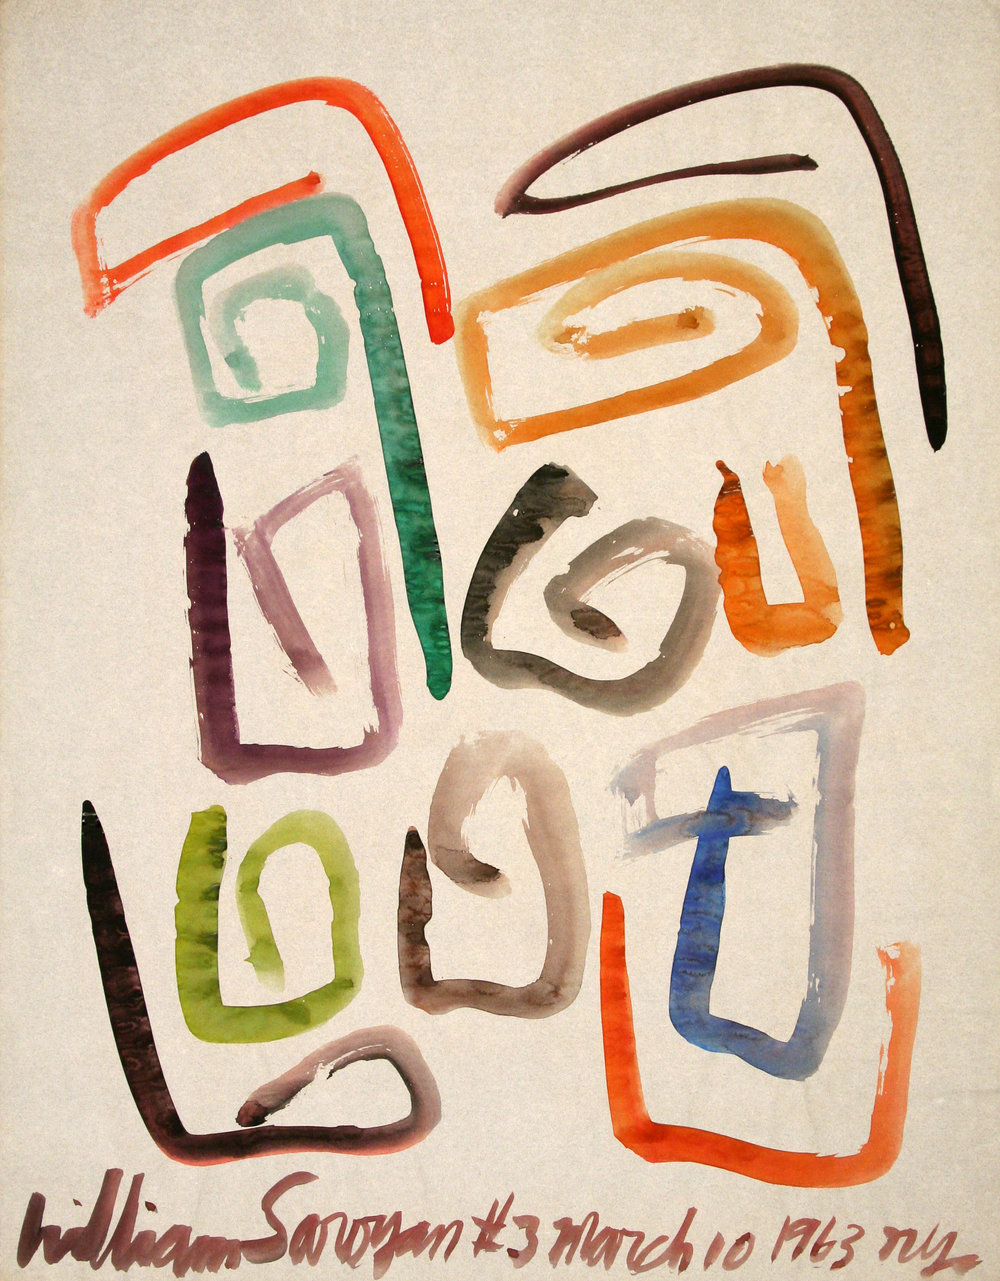 "William Saroyan #3 March 10, 1963 NYC 24"" x 18.5"" Watercolor on paper $4,500"